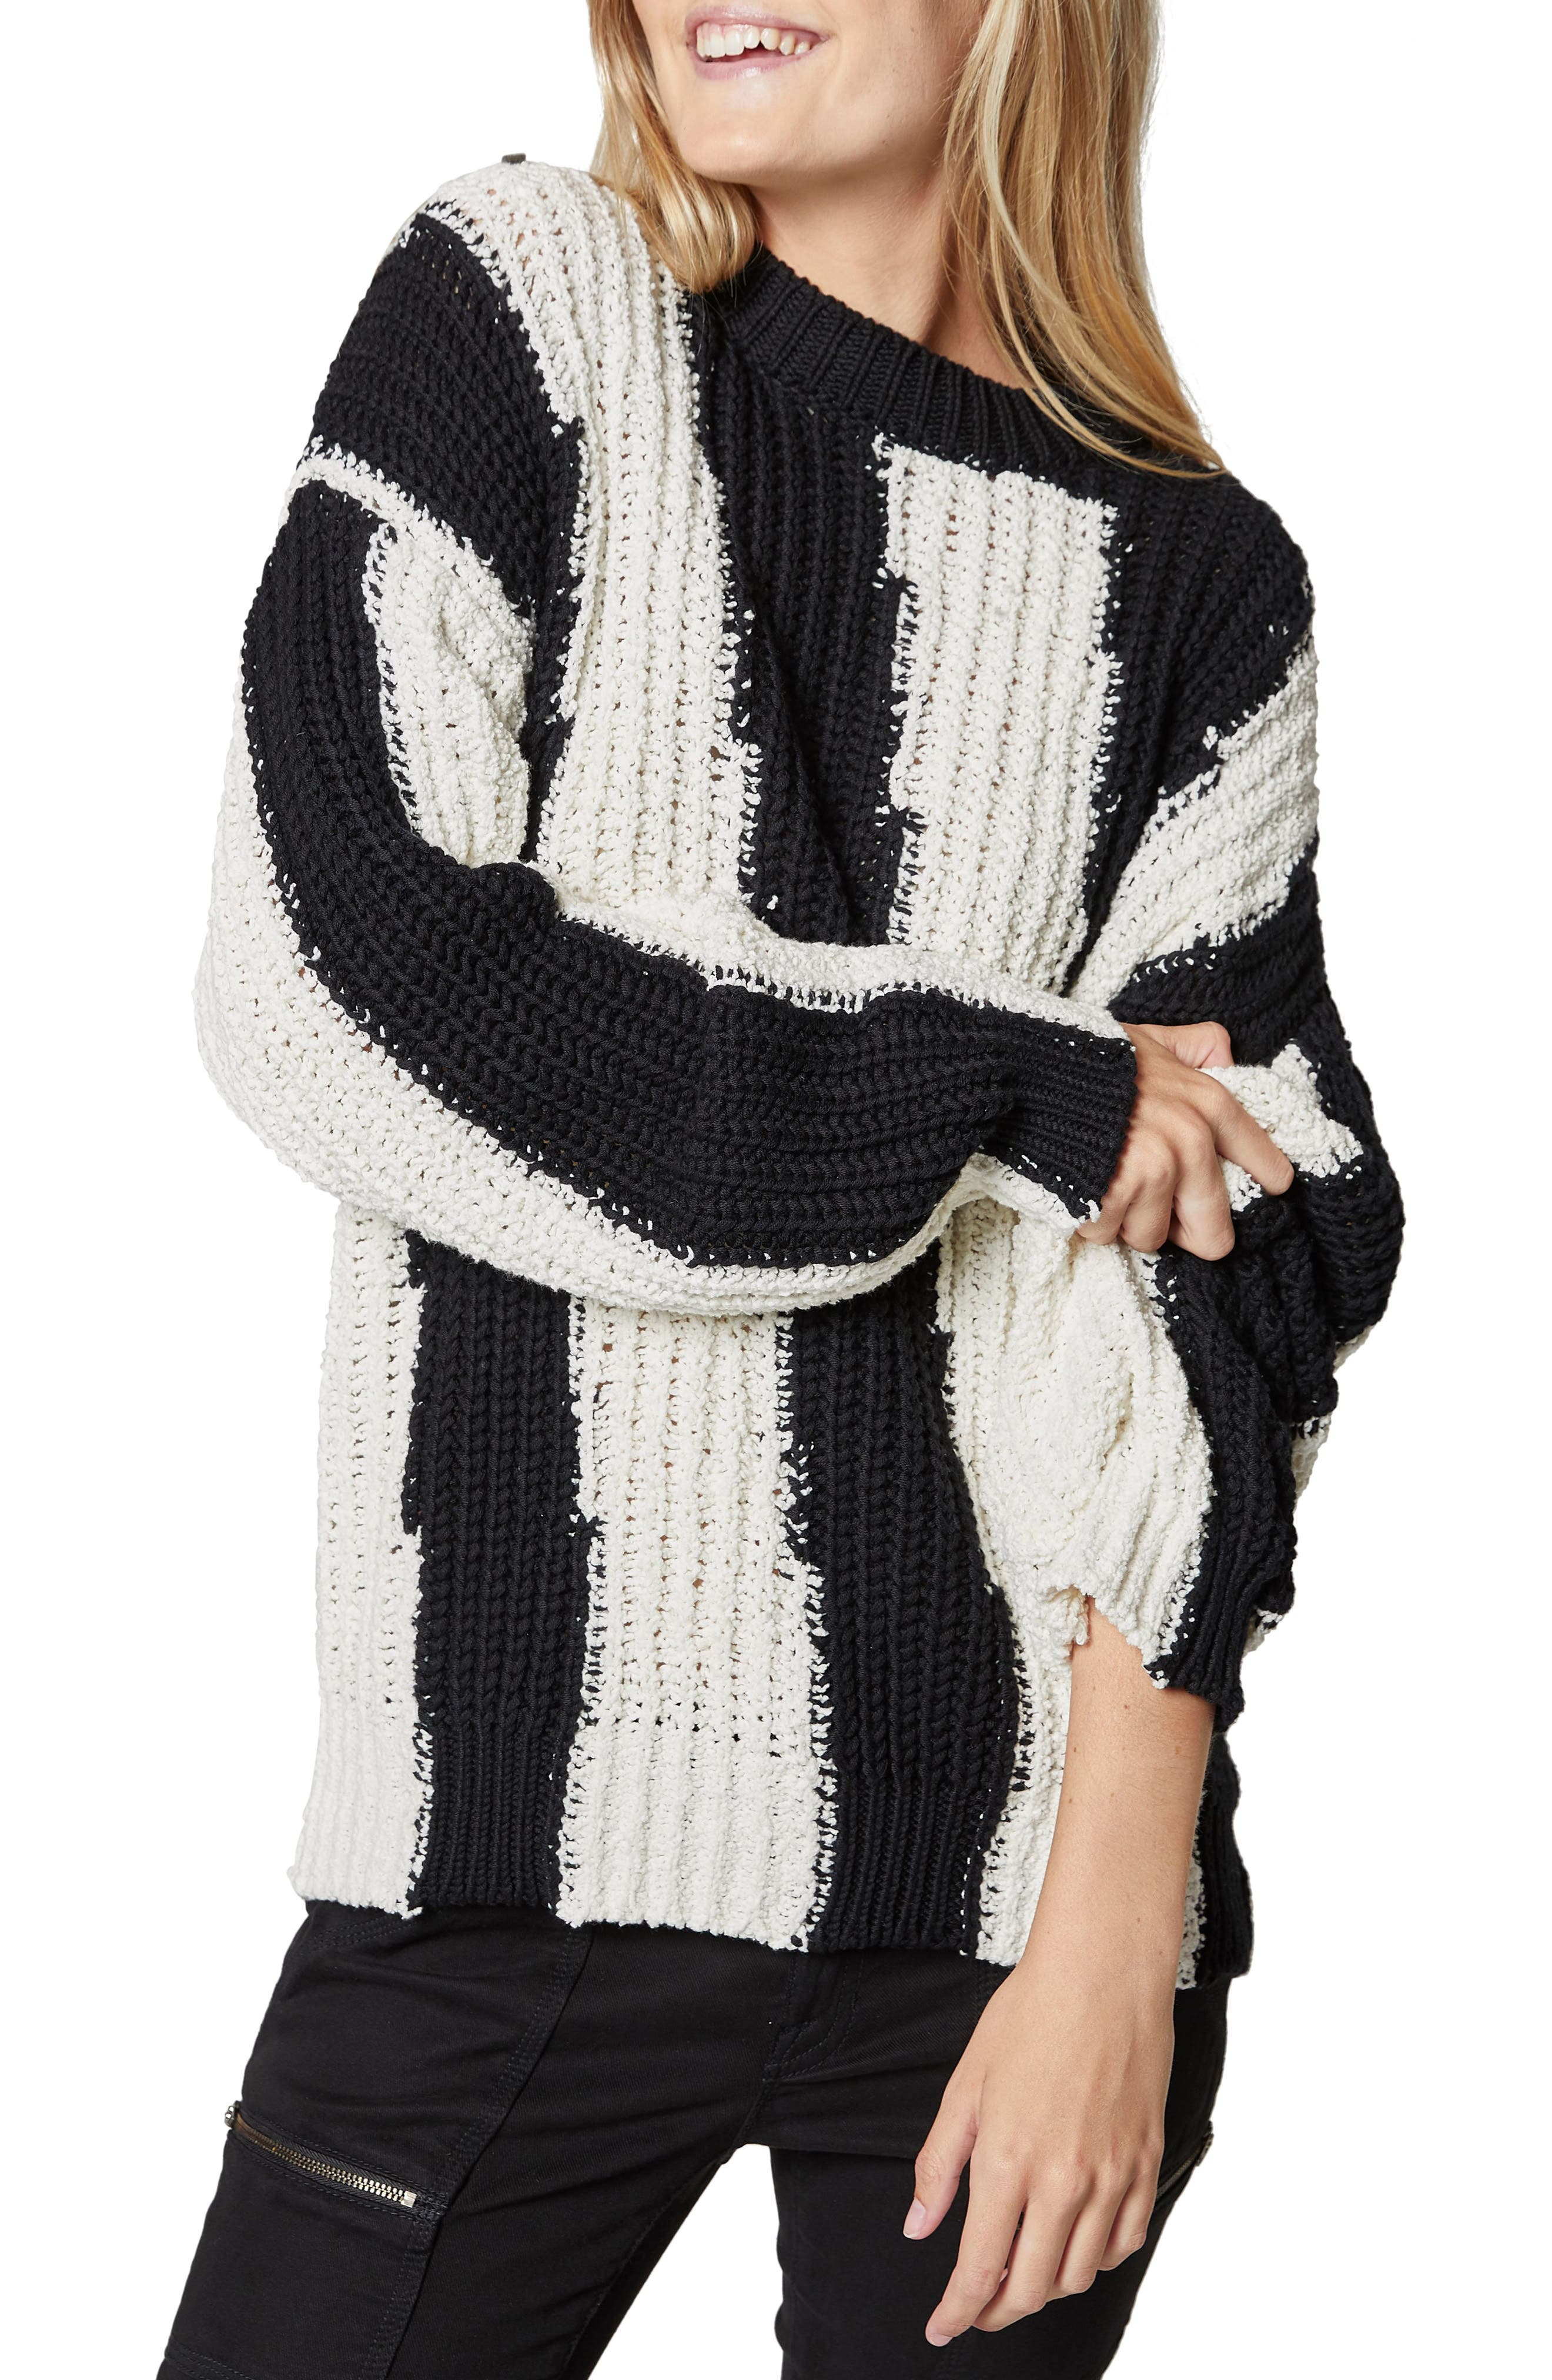 Chadsey Colorblock Cotton Blend Sweater